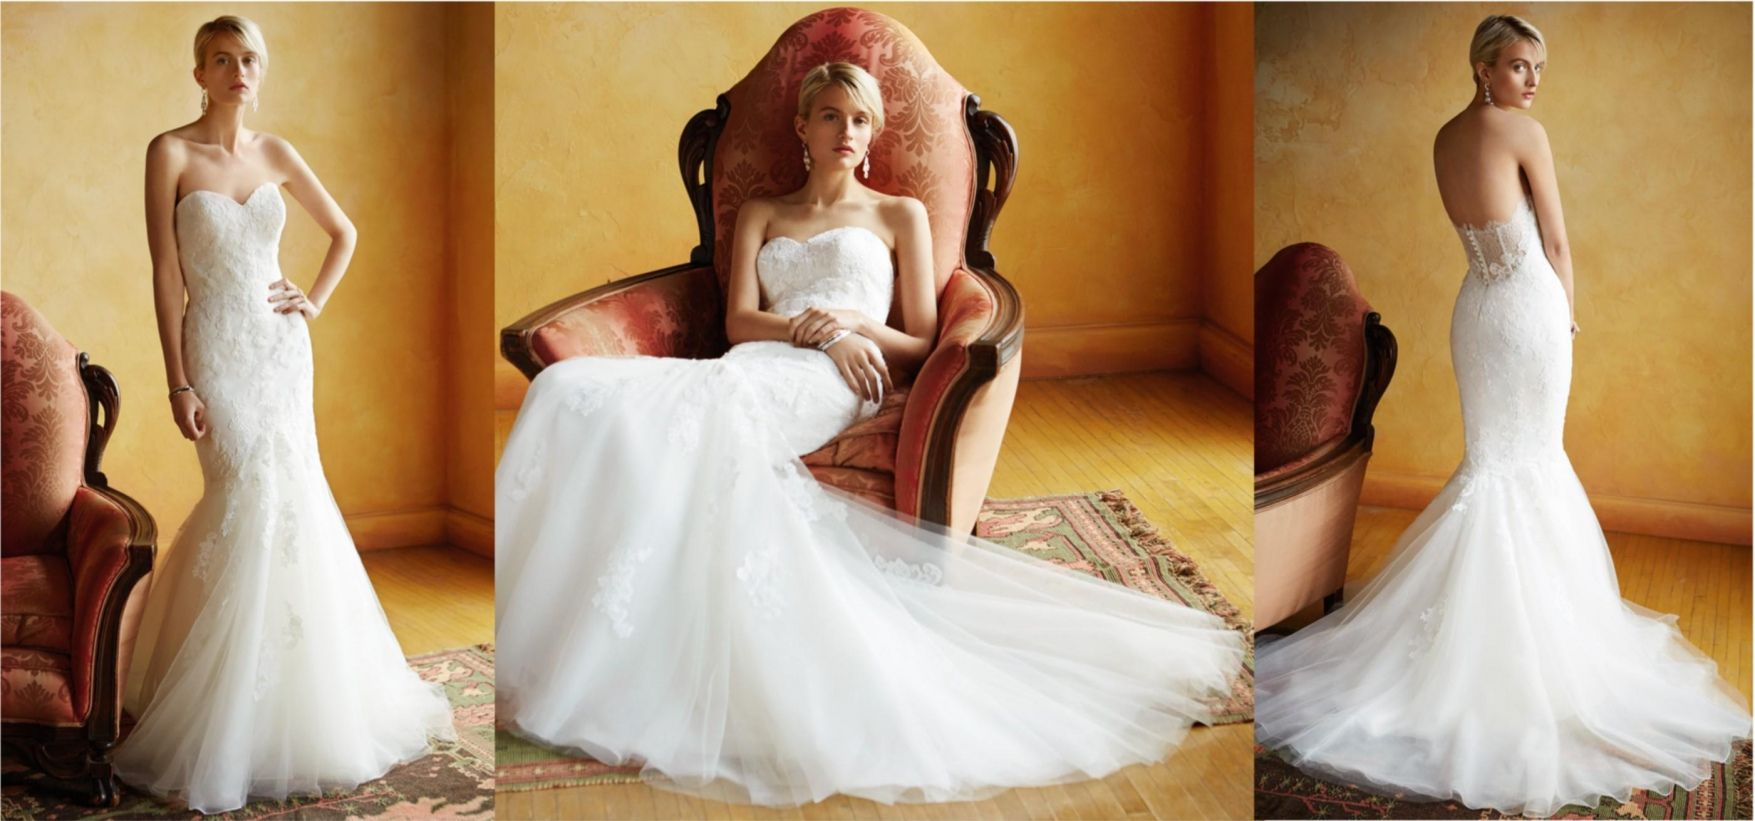 70+ Wedding Dresses for Hire In Durban - Informal Wedding Dresses ...